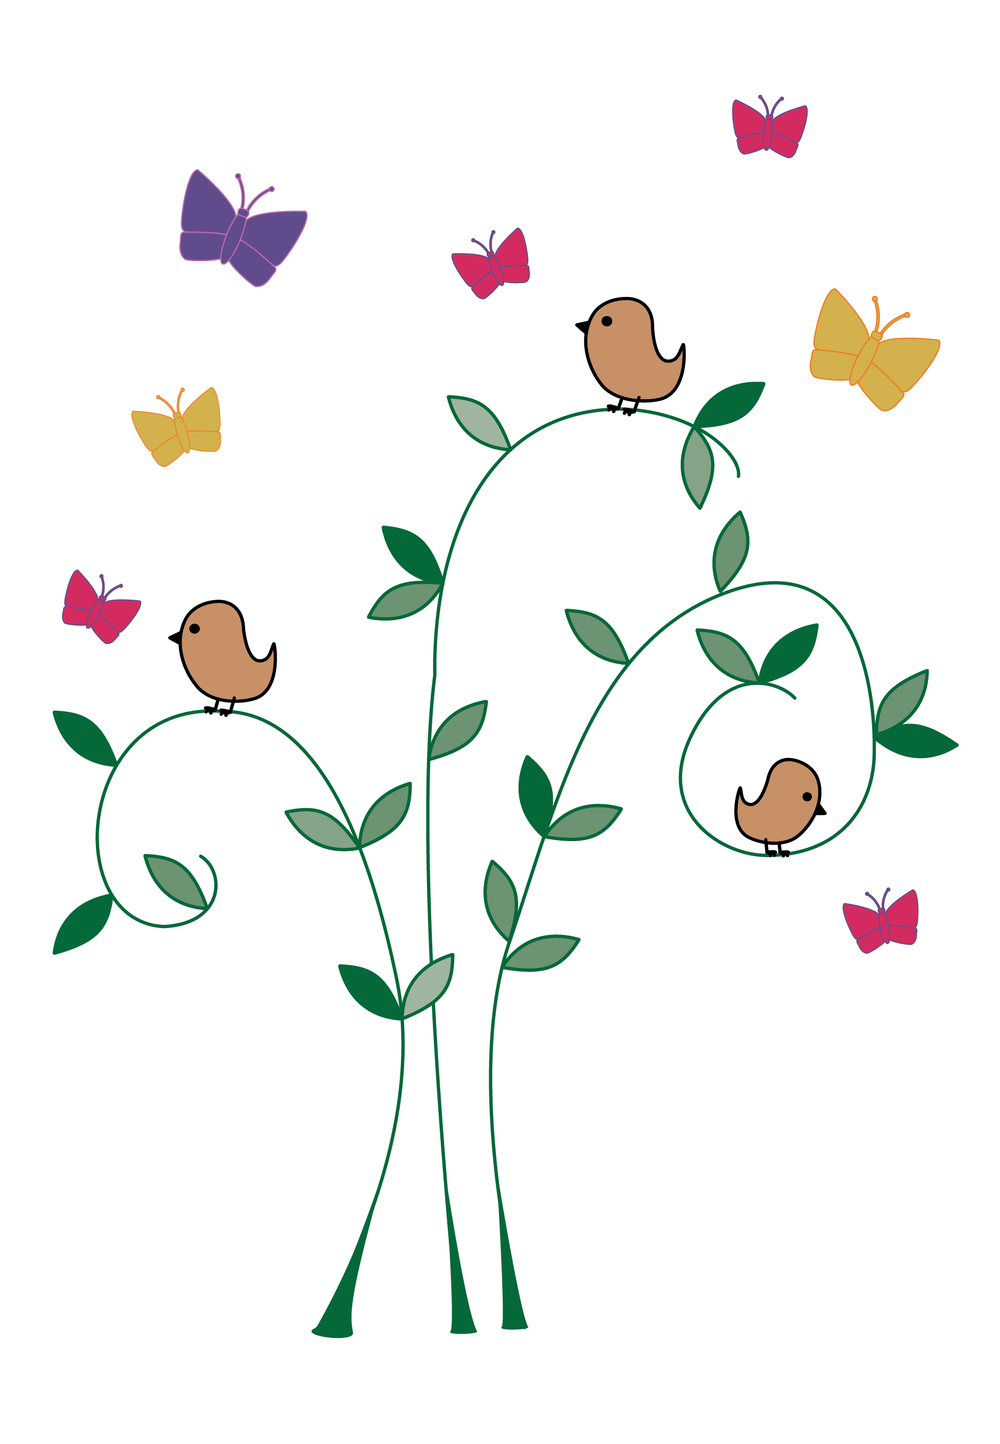 Tree Birds_CARD 900x1300px.png